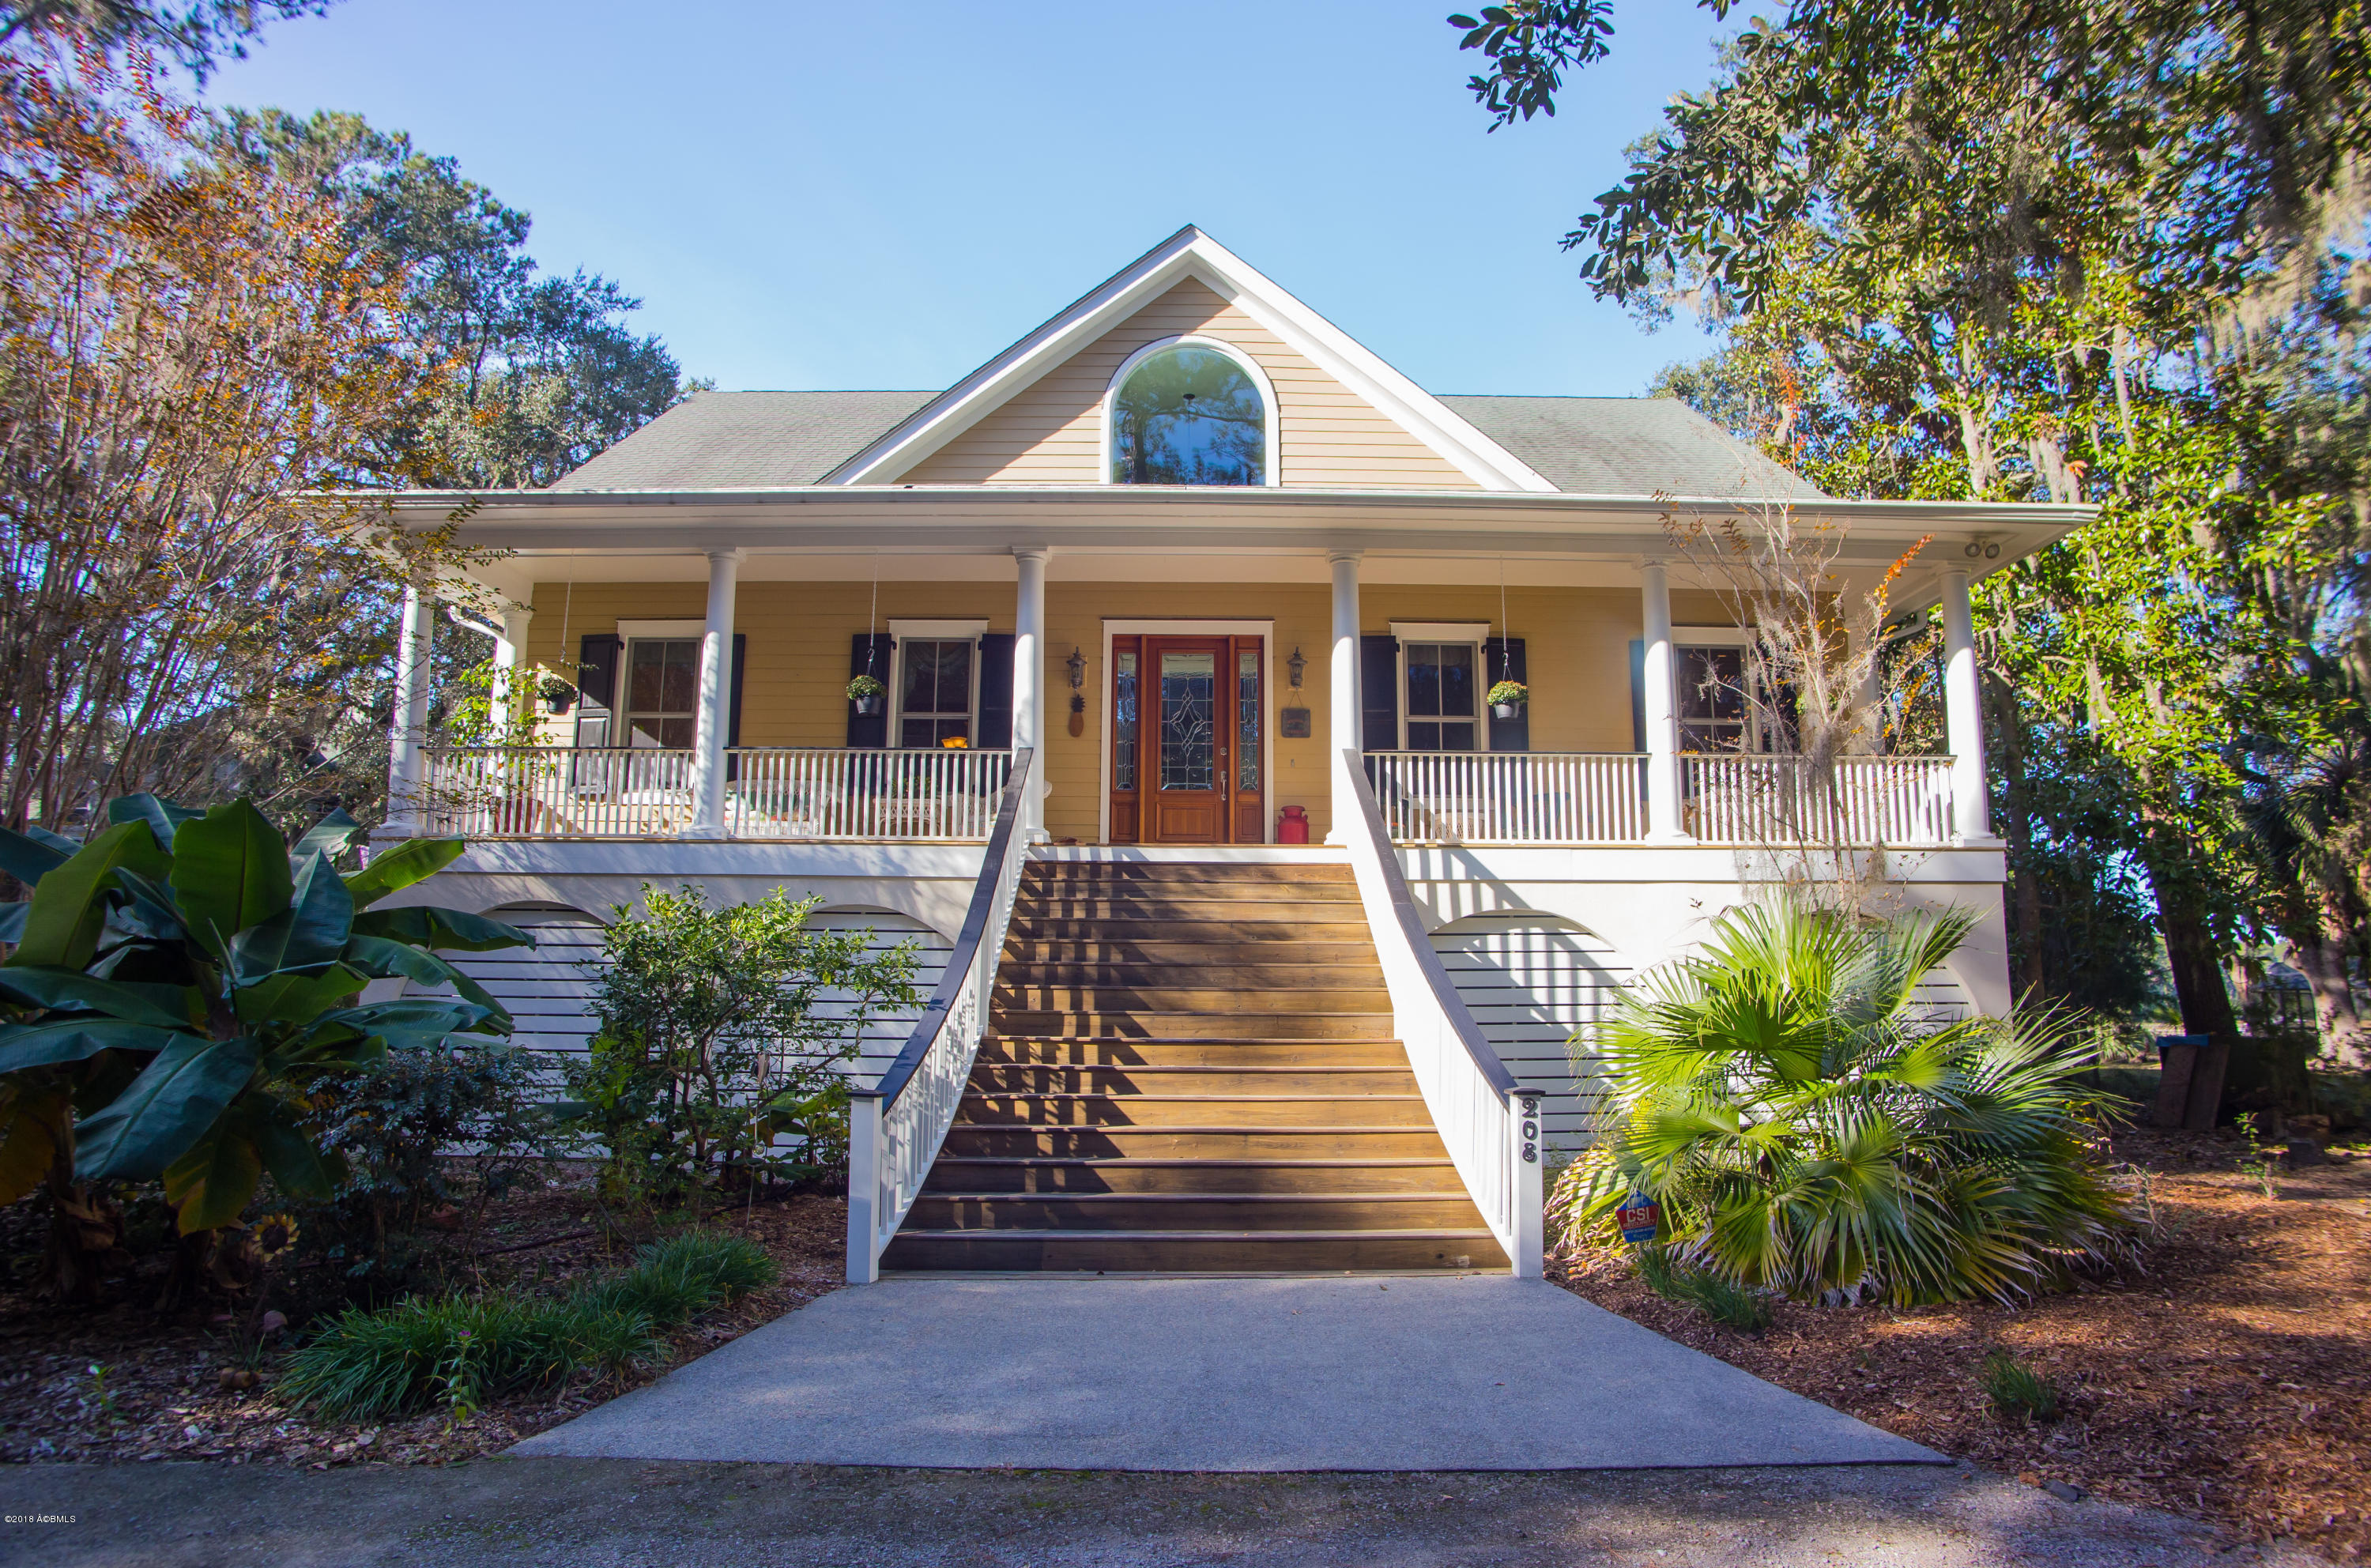 Photo of 208 Green Winged Teal Drive, Beaufort, SC 29907